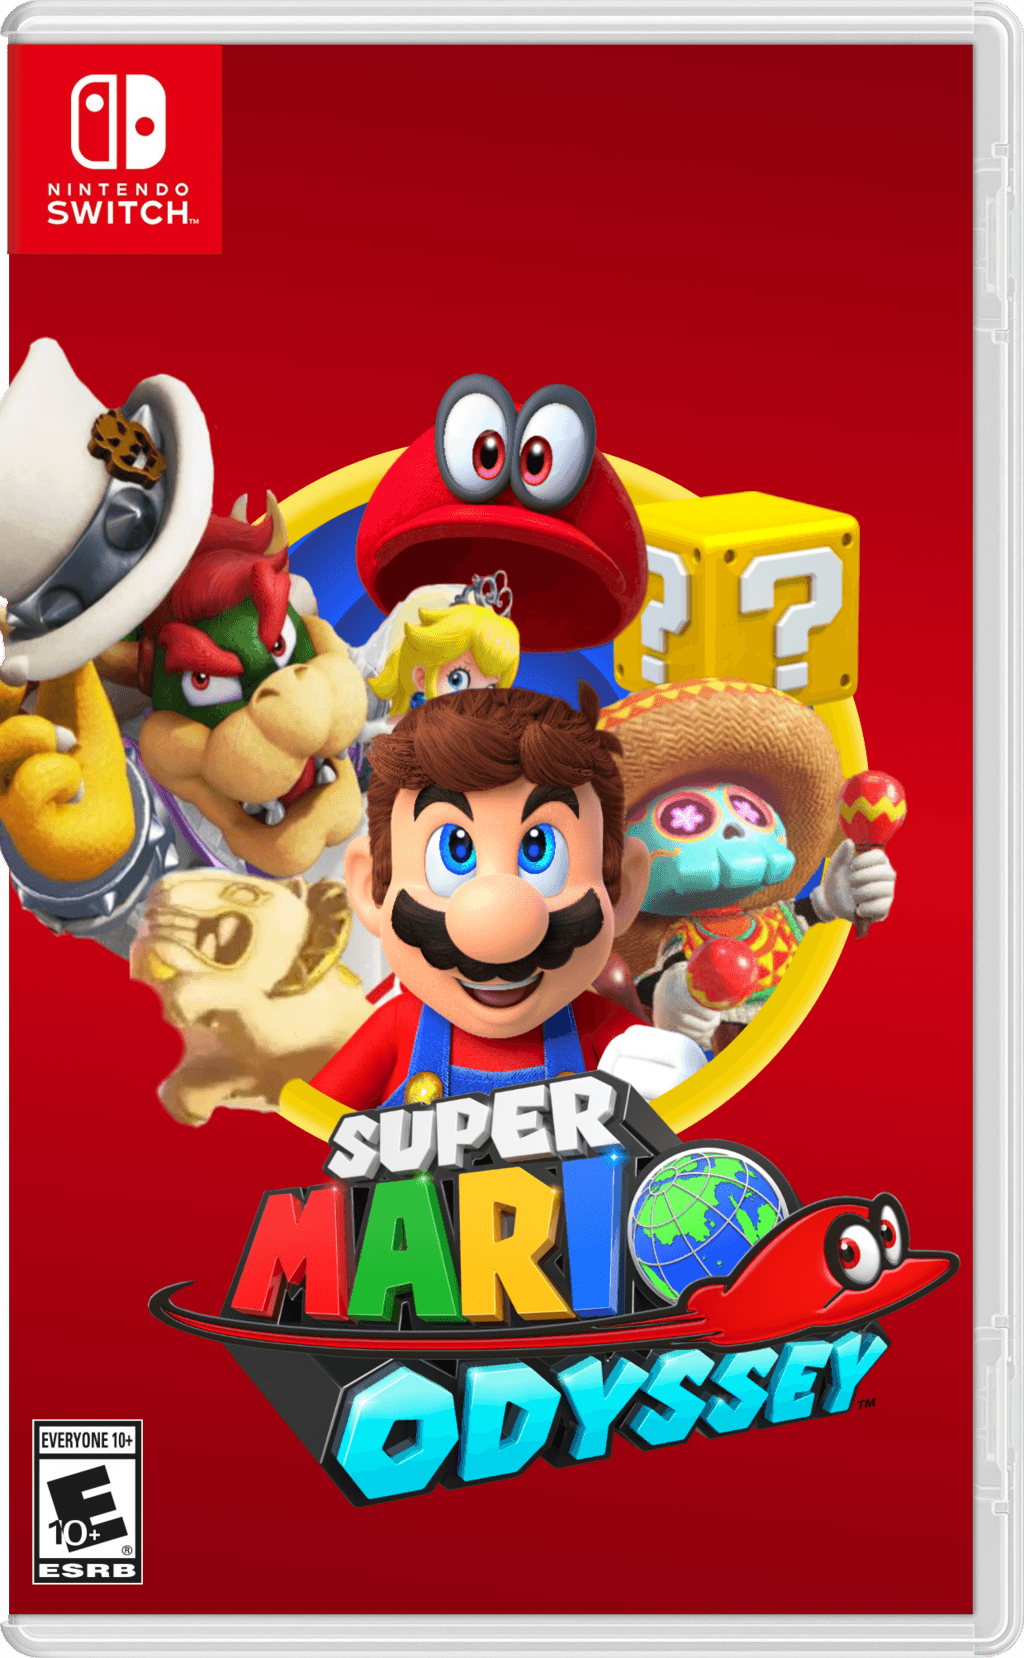 Nintendo Switch Box Art: Super Mario Odyssey by Zyphyris